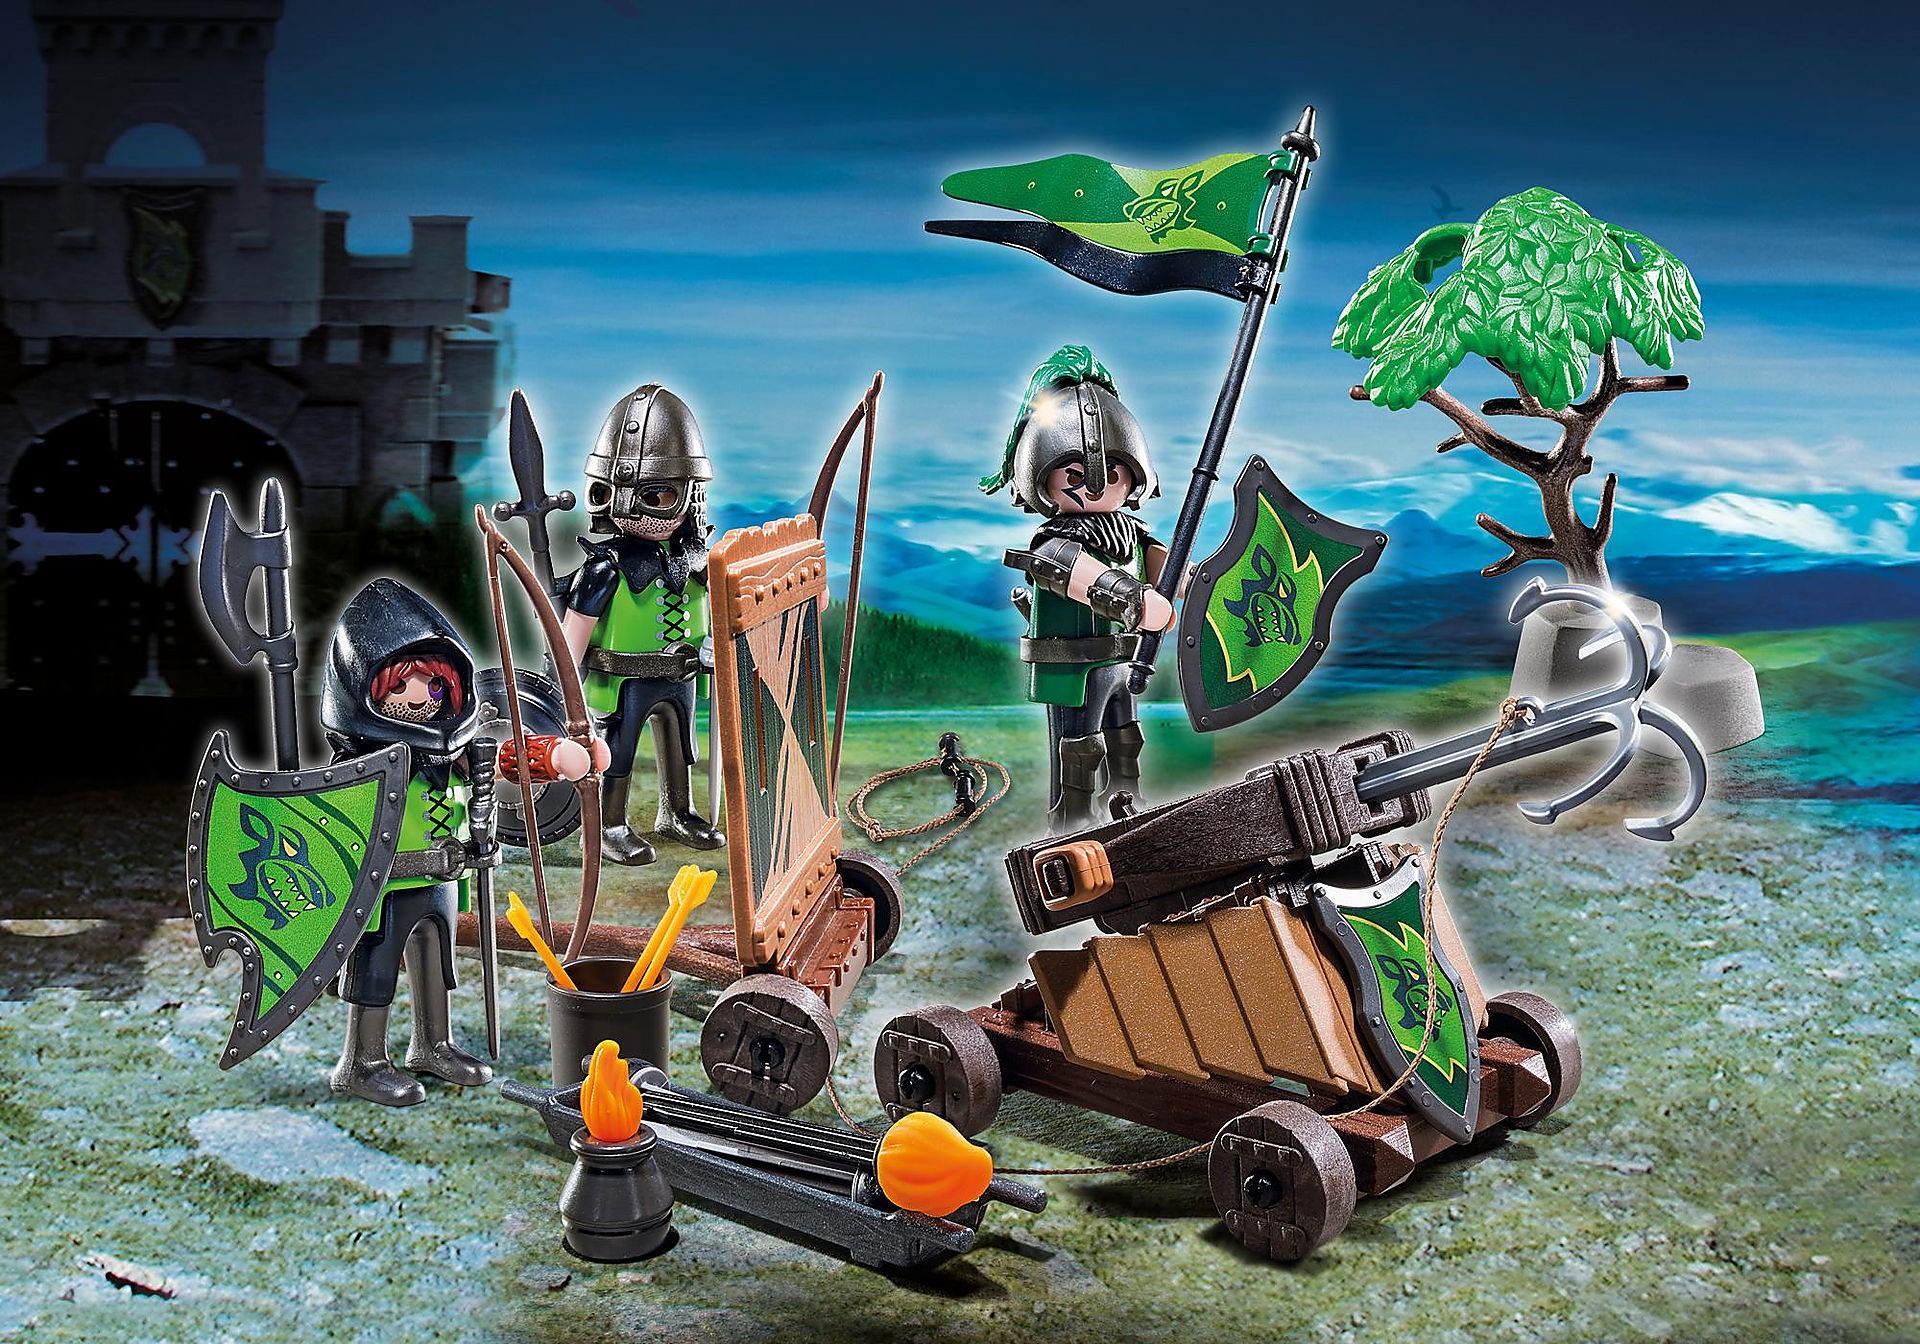 http://media.playmobil.com/i/playmobil/6041_product_detail/Wolf Knights with Catapult